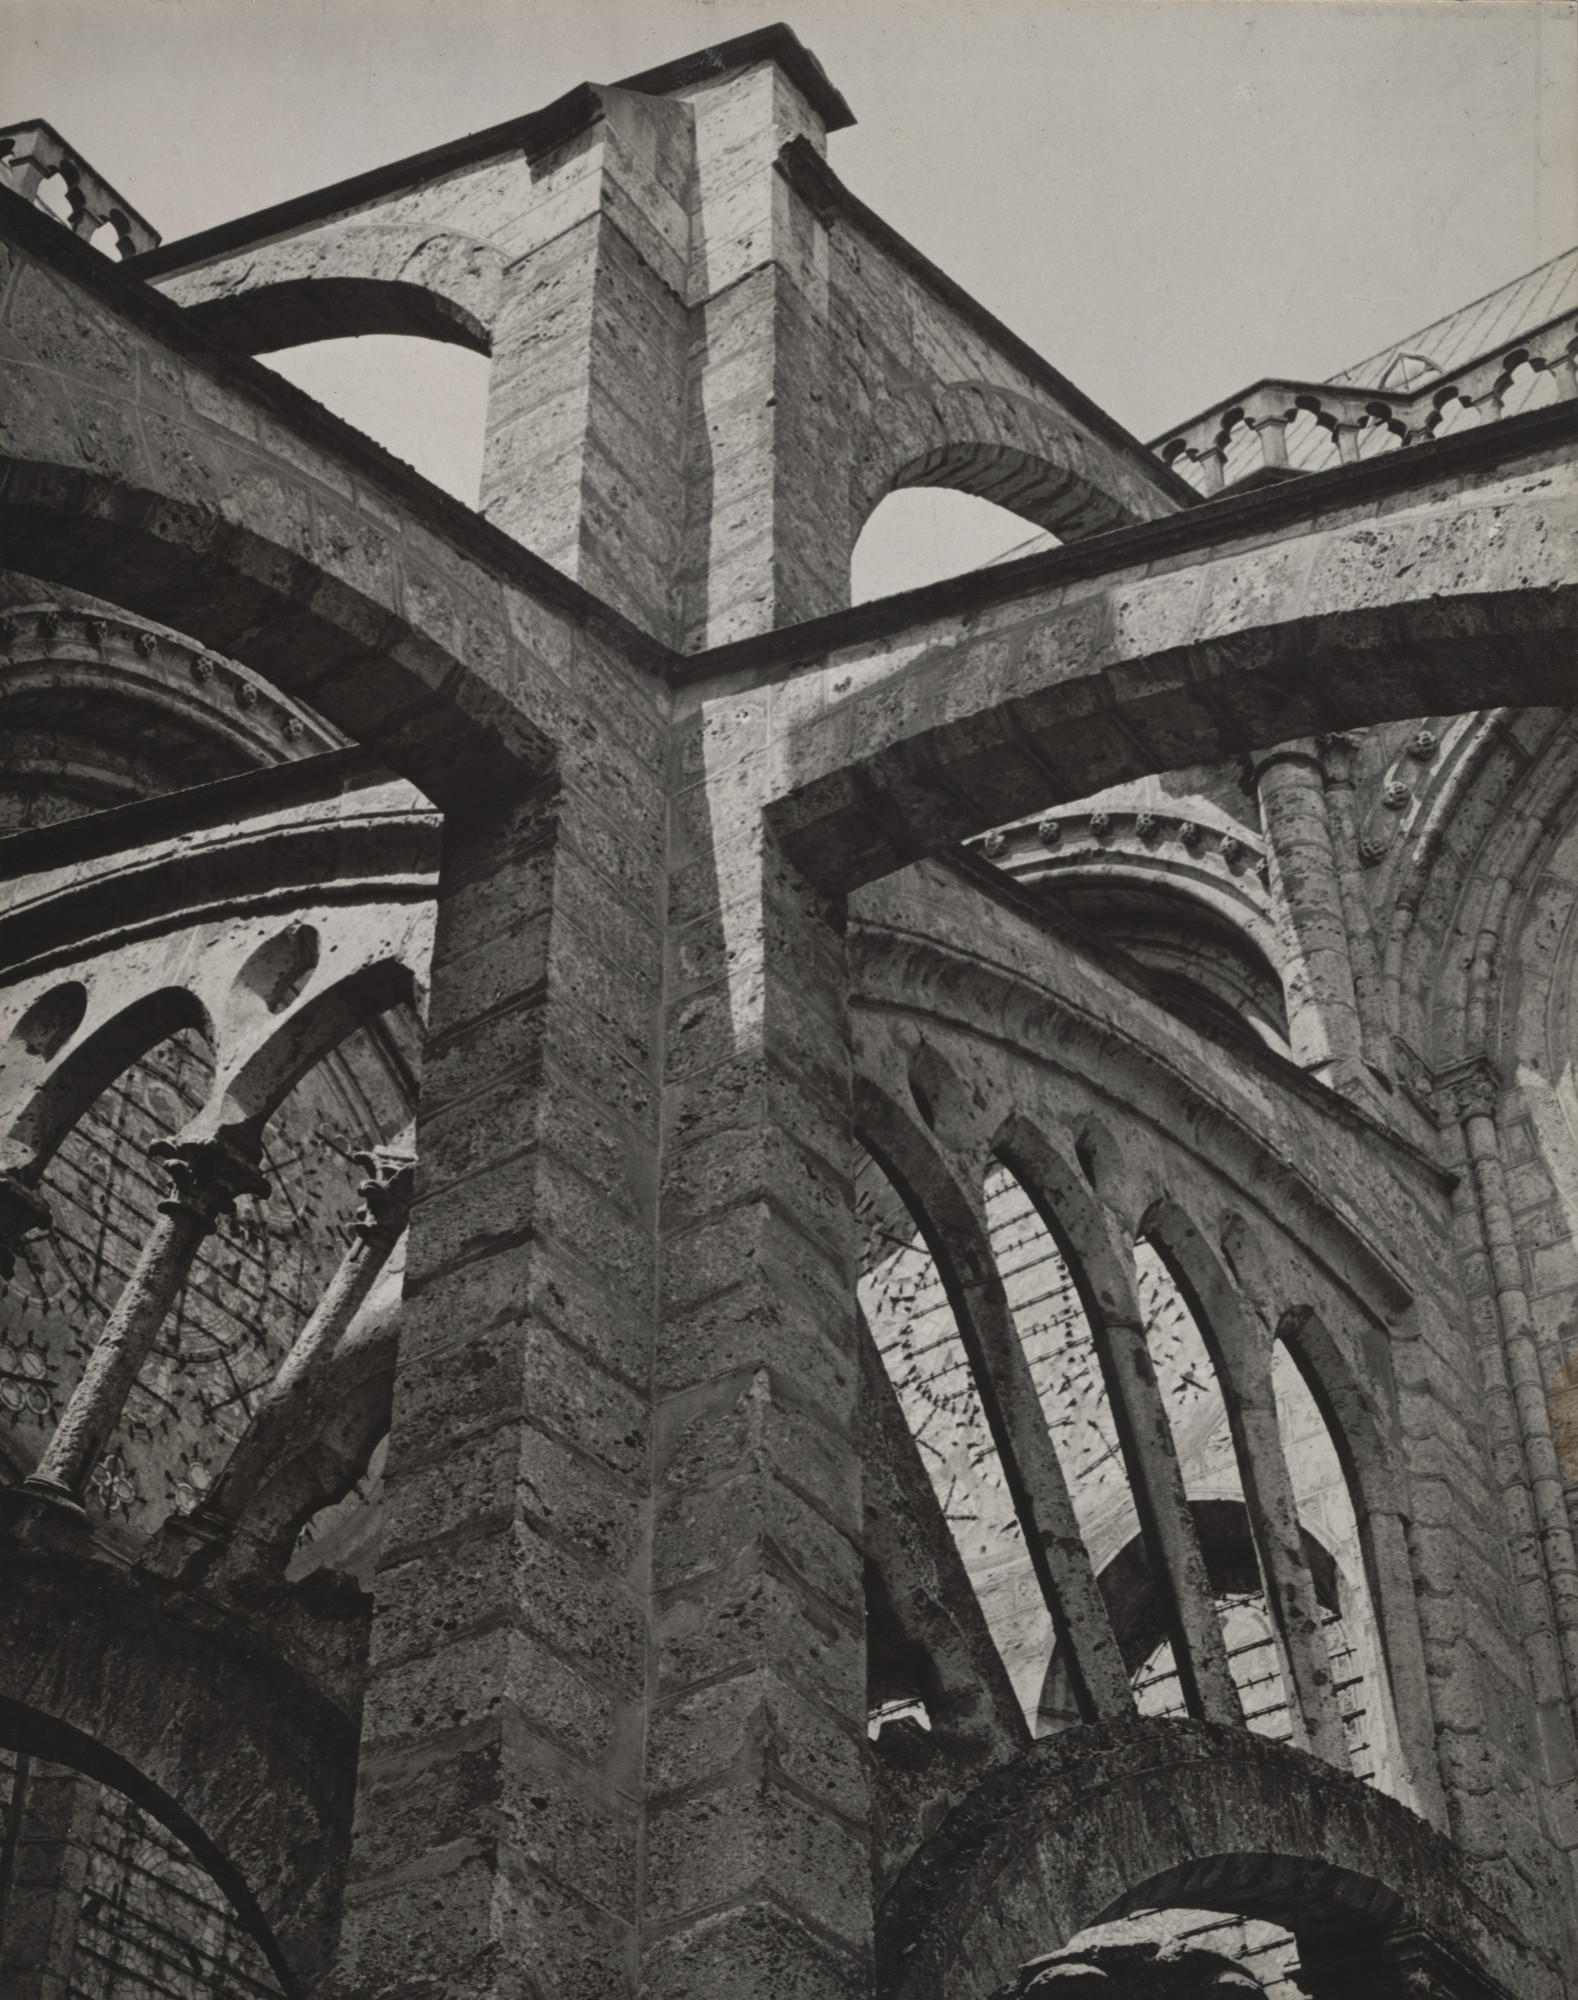 Charles Sheeler. Buttresses, Chartres Cathedral. 1929